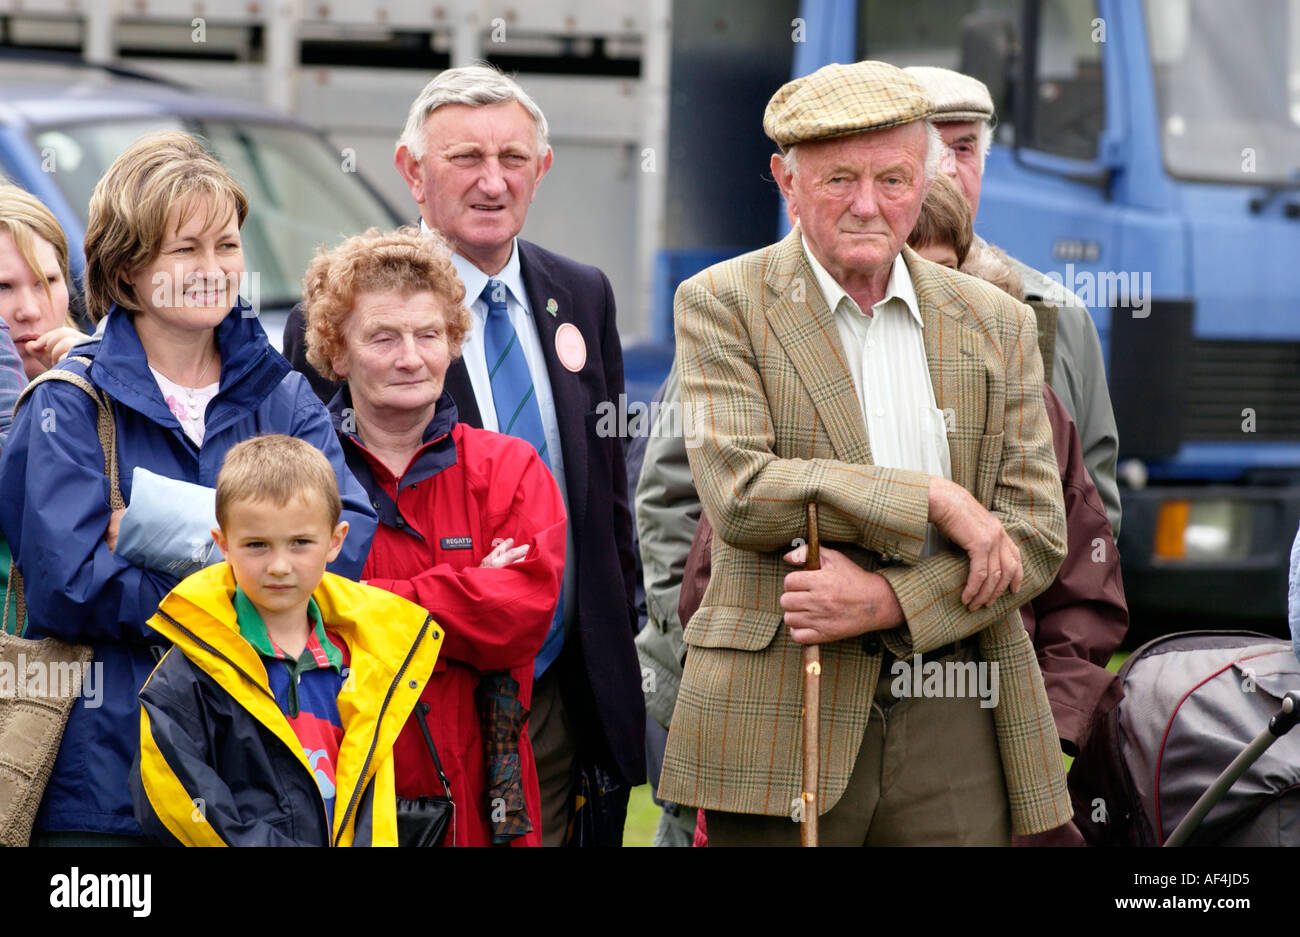 Spectators watching livestock judging at Brecknockshire Agricultural Society annual show in its 250th year Brecon Powys Wales UK - Stock Image